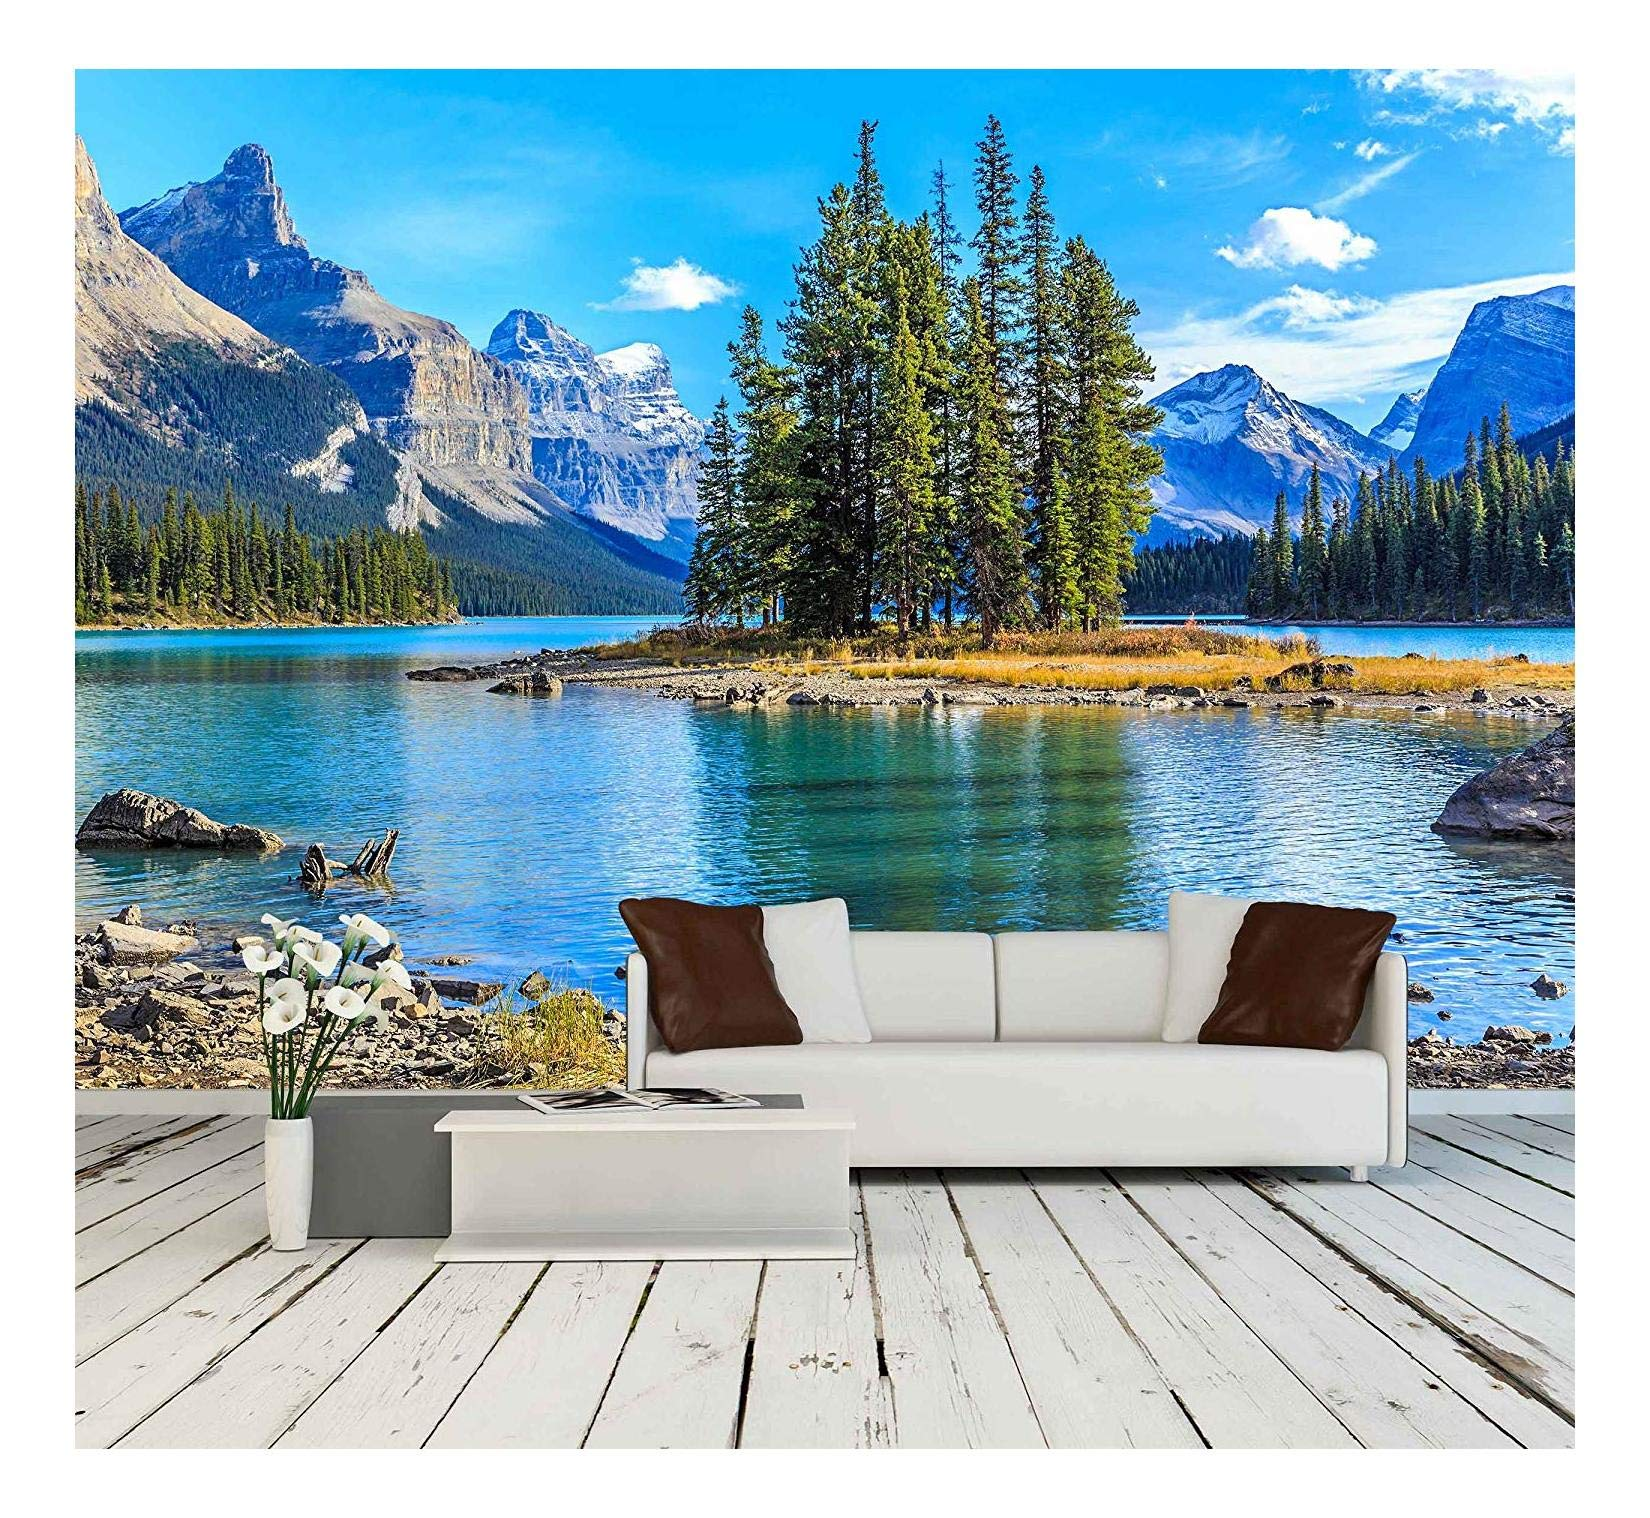 wall26 - Spirit Island in Maligne Lake - Removable Wall Mural | Self-Adhesive Large Wallpaper - 66x96 inches by wall26